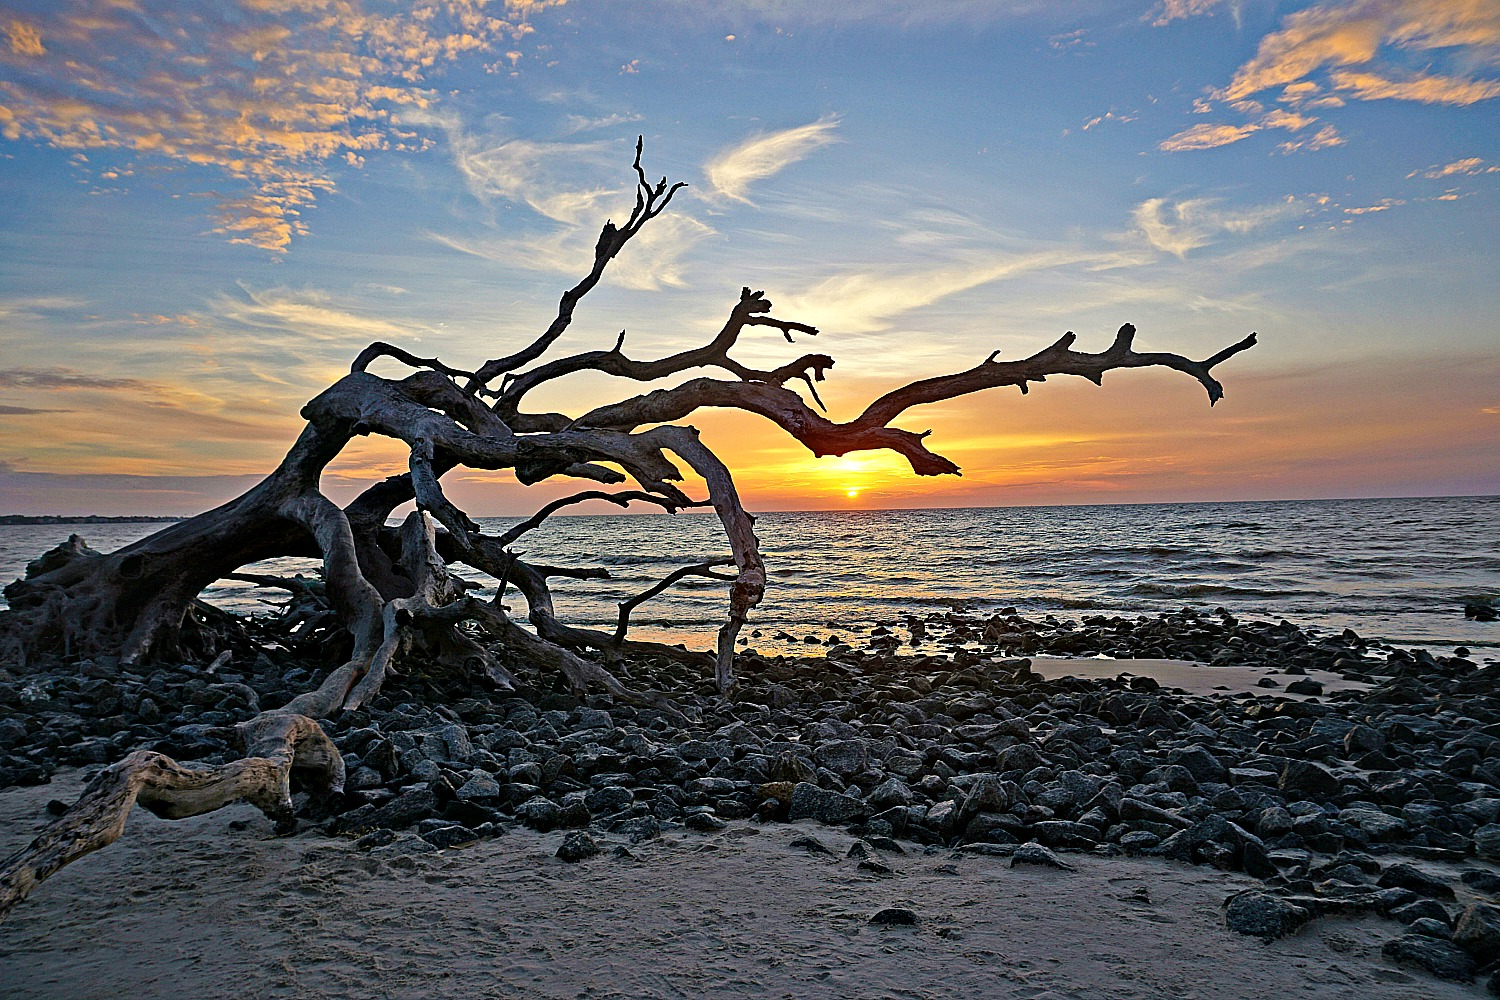 Driftwood beaches of the East Coast. Jekyll Island. Bent tree at sunrise.